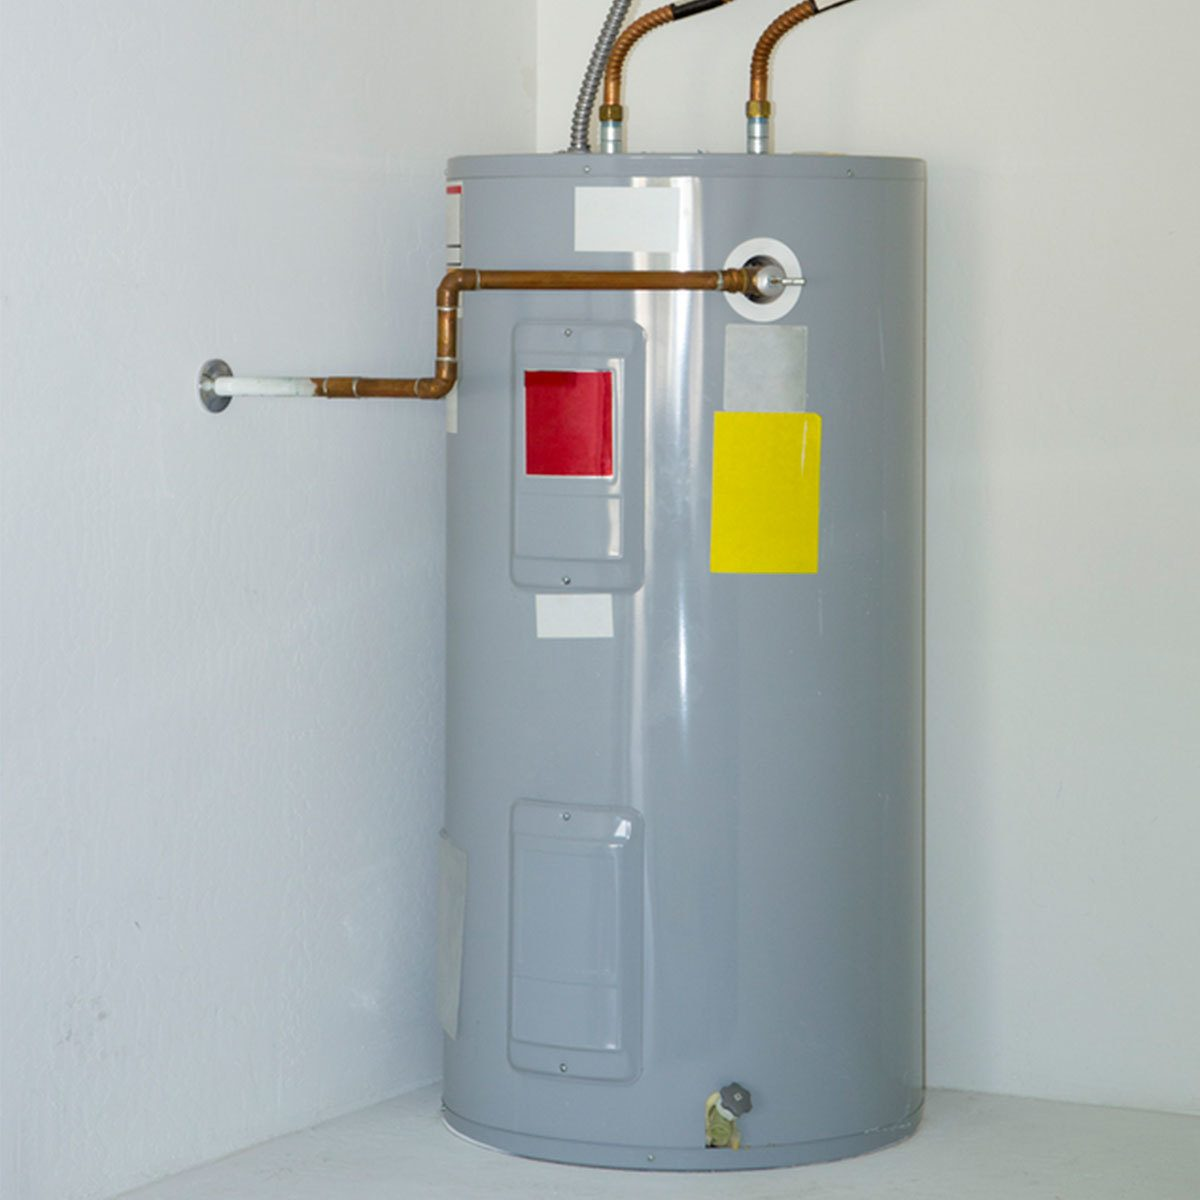 hot water heater timer